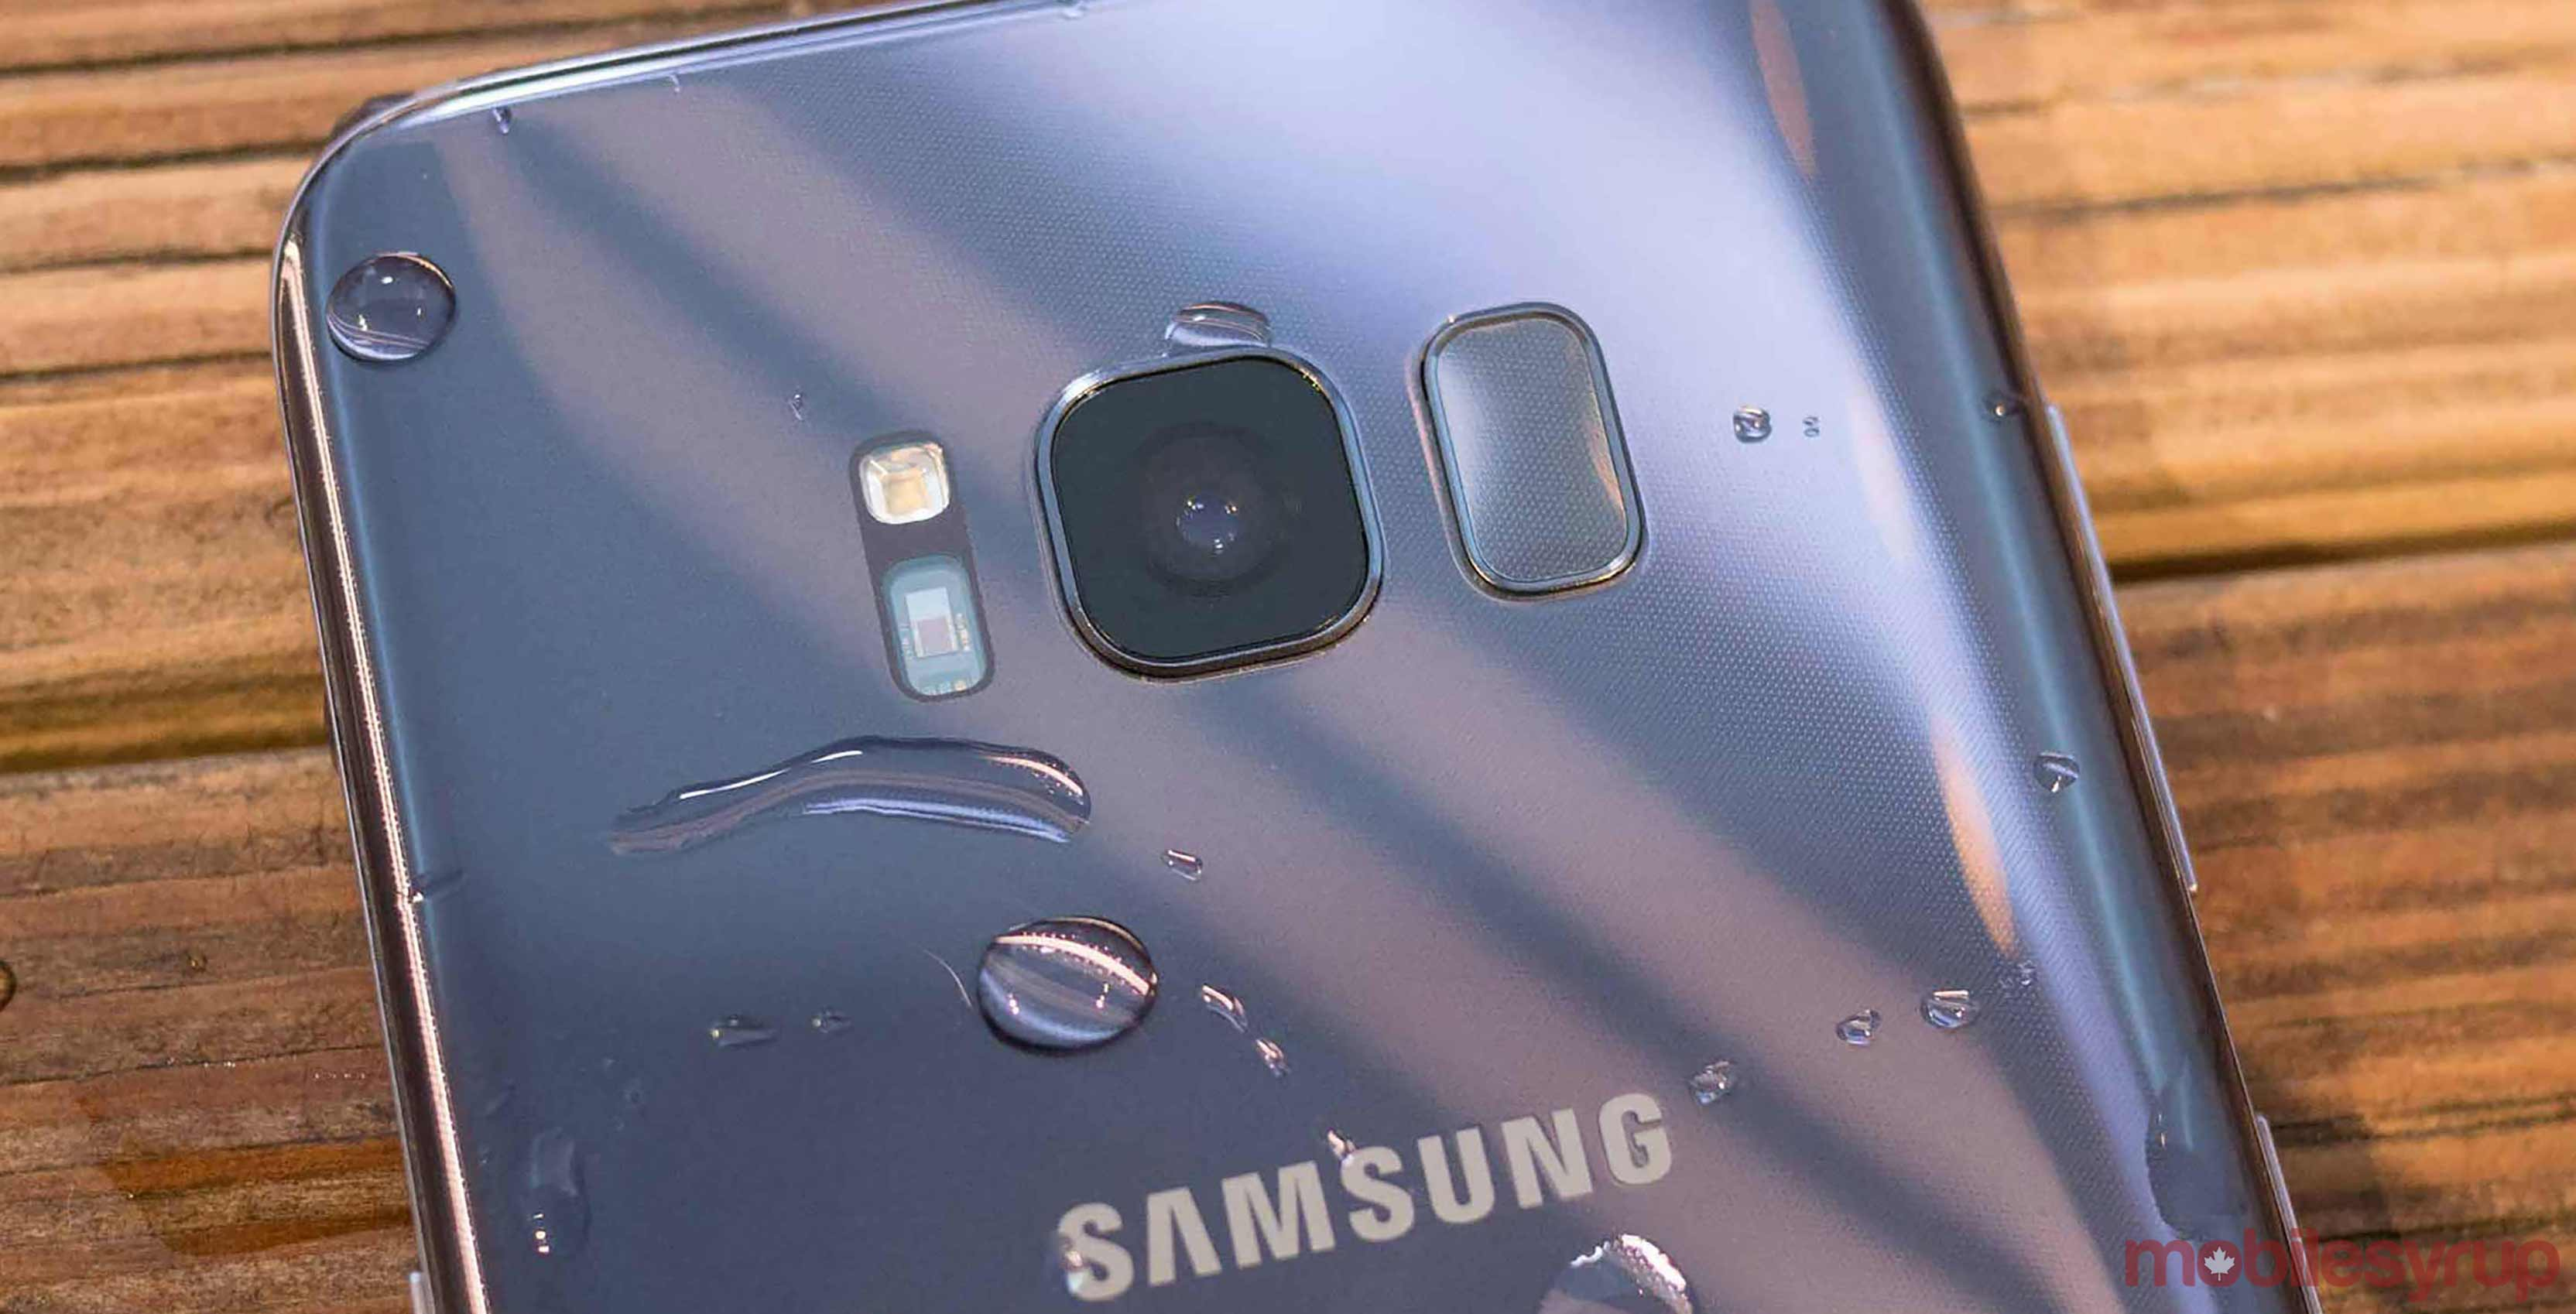 This Samsung Phone Will Beat Galaxy S10 to a Key Feature